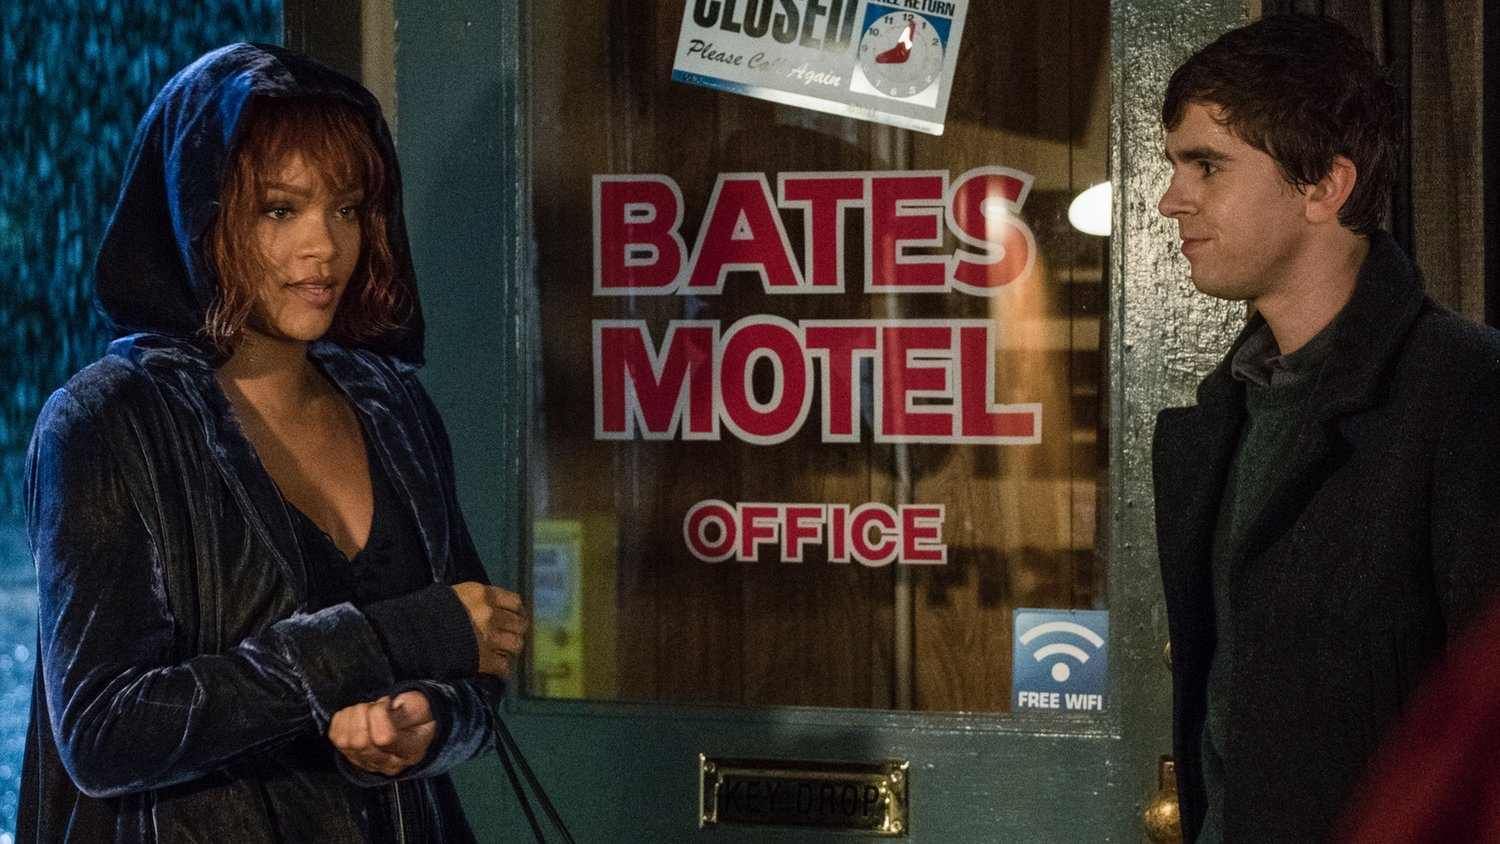 Intense Trailer for BATES MOTEL Season 5 Offers First Look at Rihanna as Marion Crane